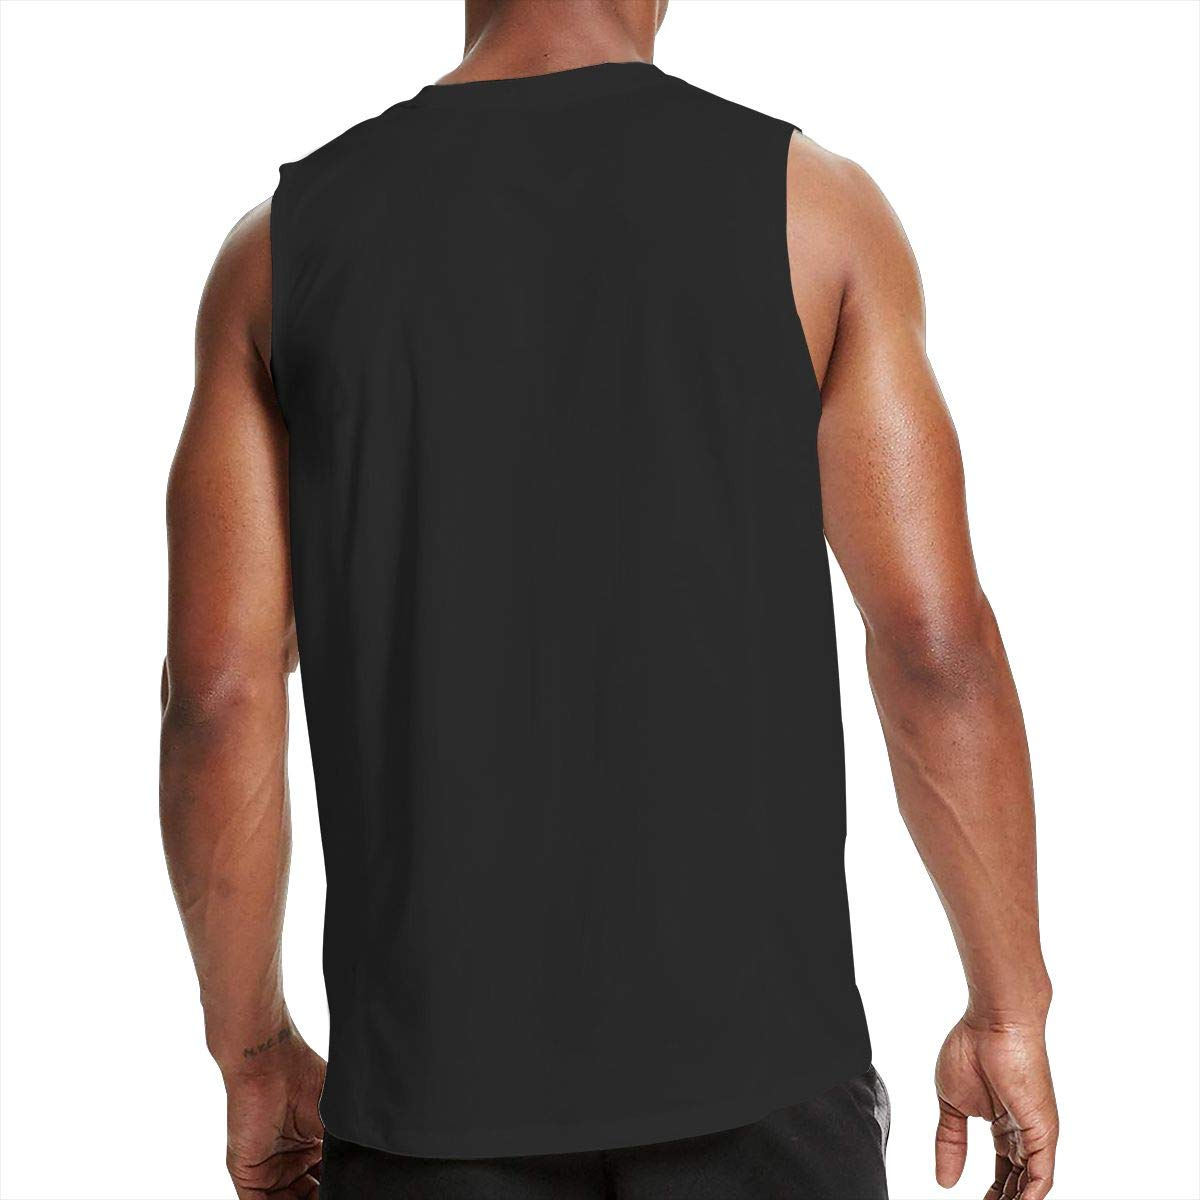 NRYDYMM Mens Sleeveless T Shirt Three Percenter 1776 100/% Cotton Bodybuilding T Shirt